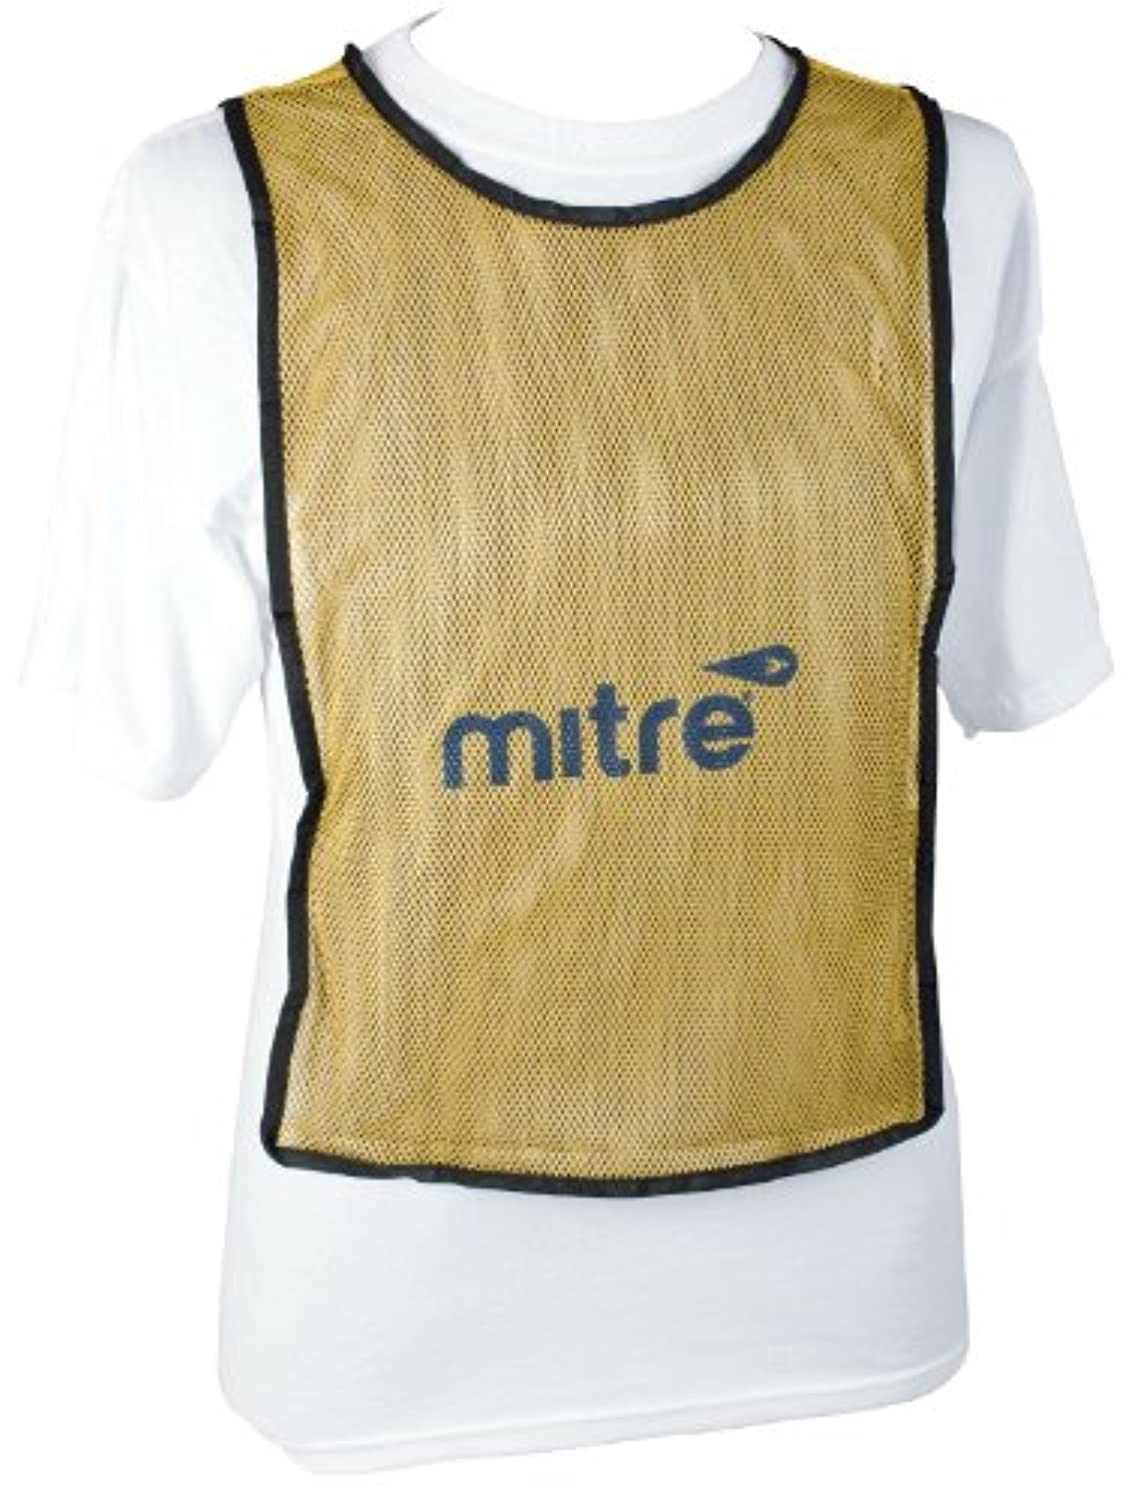 Mitre Pinnies 2 Multi-Color Training Vest (Yellow/White, 4 Pack) by Regent Sports